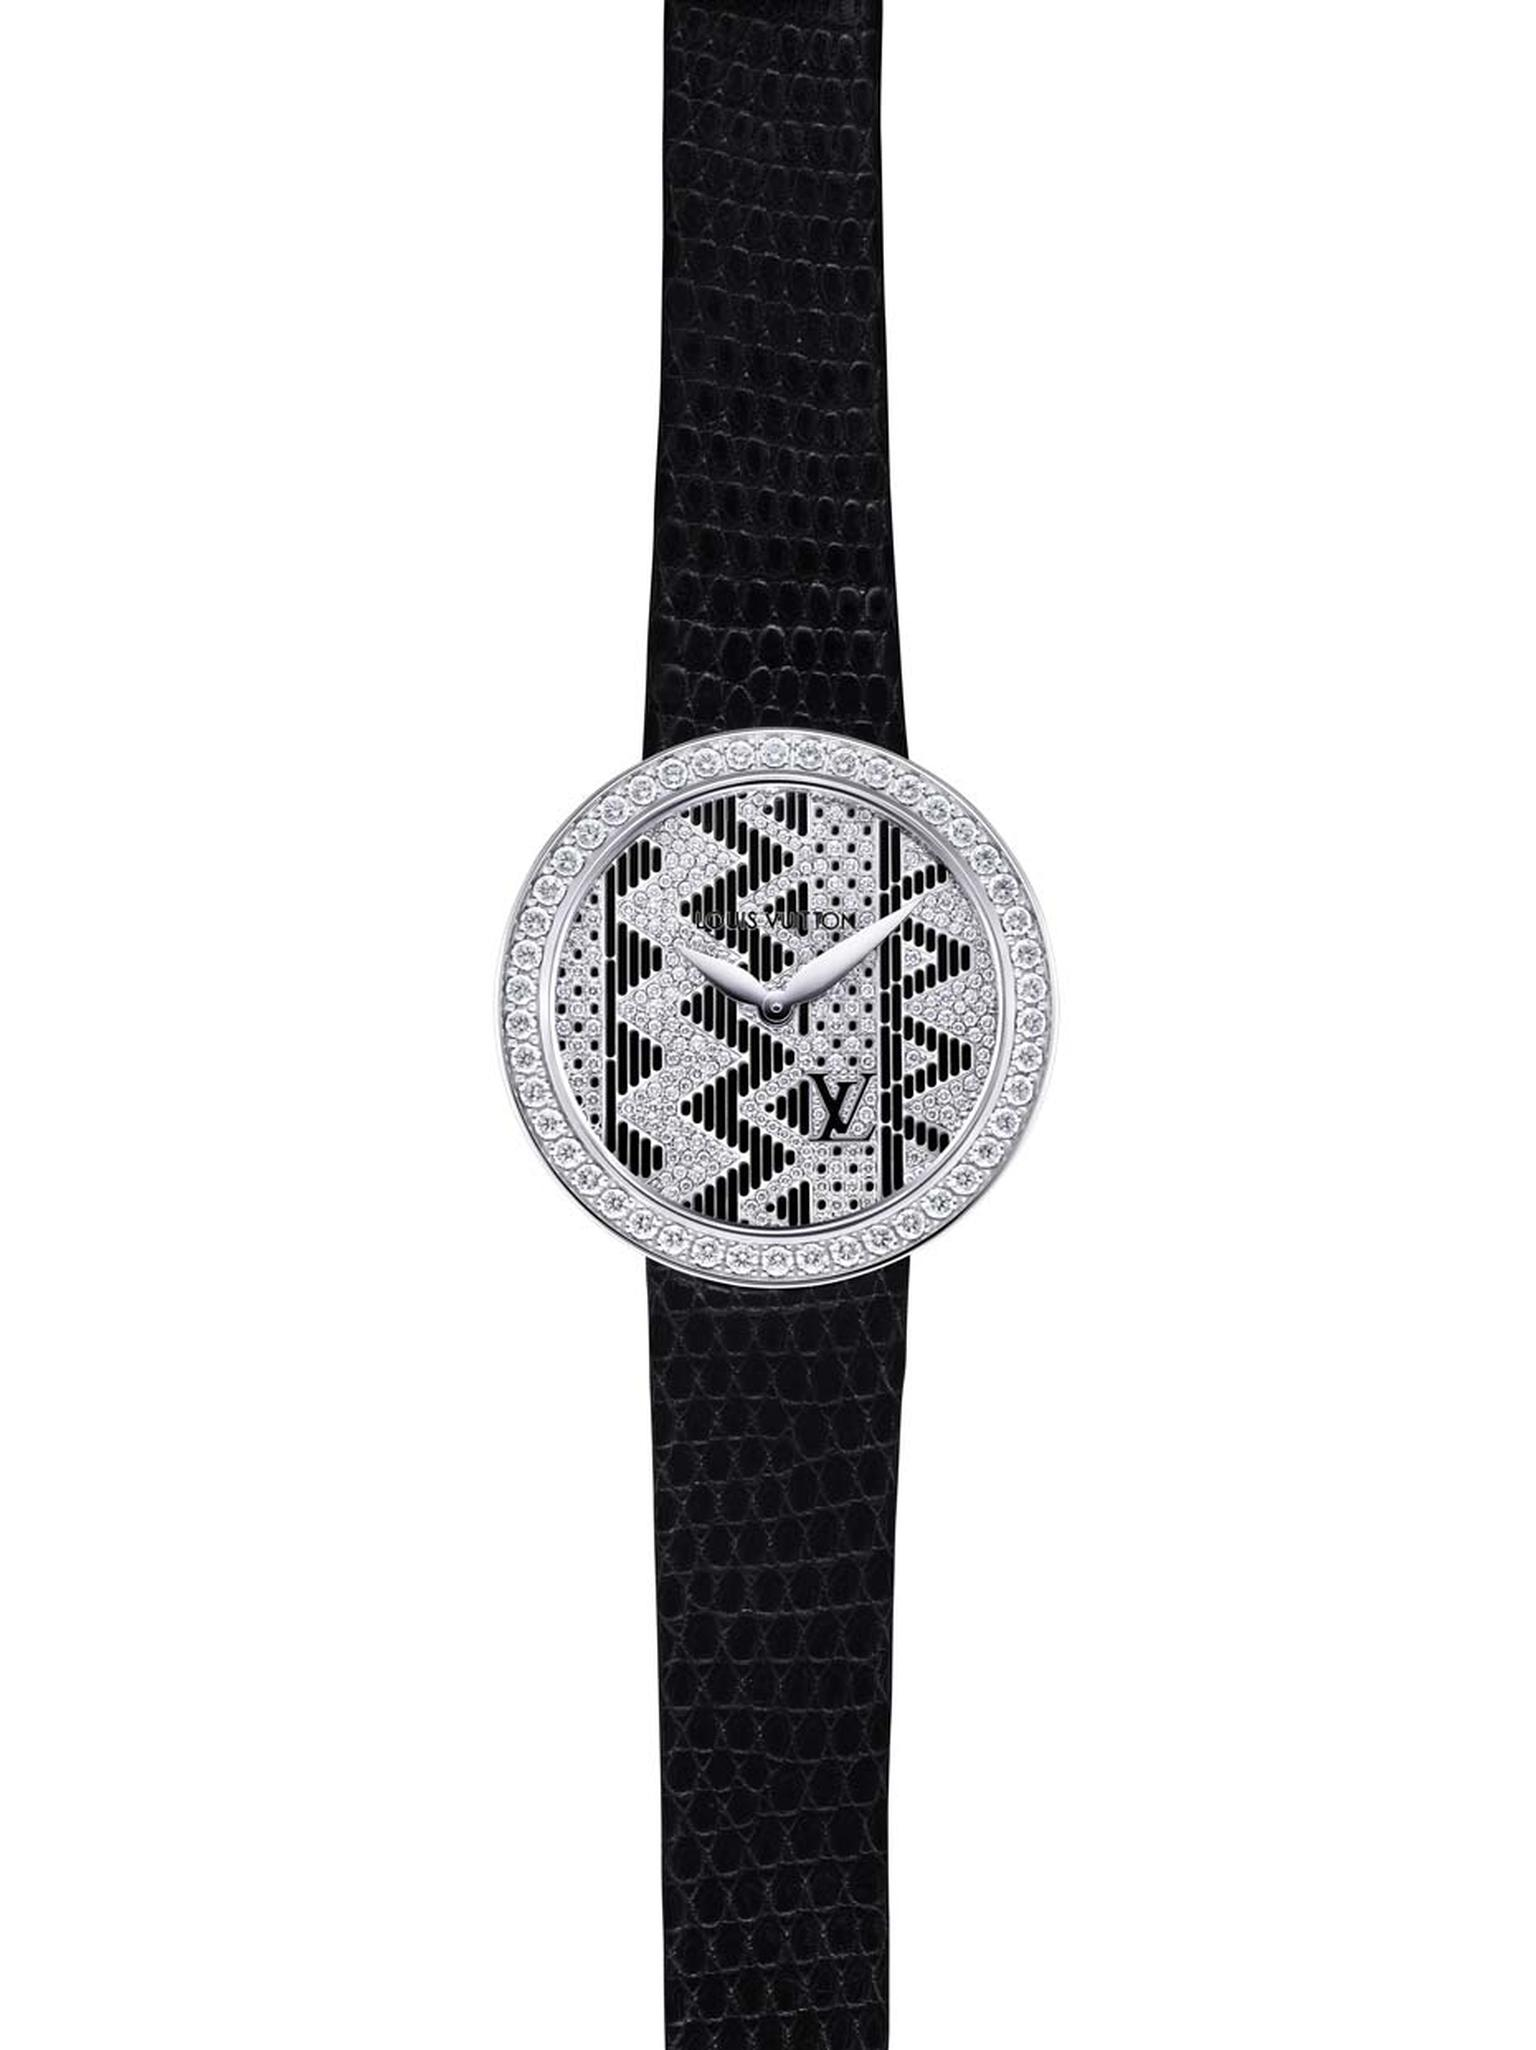 The new Louis Vuitton Chevron jewellery watch continues the Aztec theme seen in Nicolas Ghesquière's Summer 2015 collection. This black lacquer version has a rhodium-plated white gold case, bezel set with 46 diamonds, and a black lizard strap.